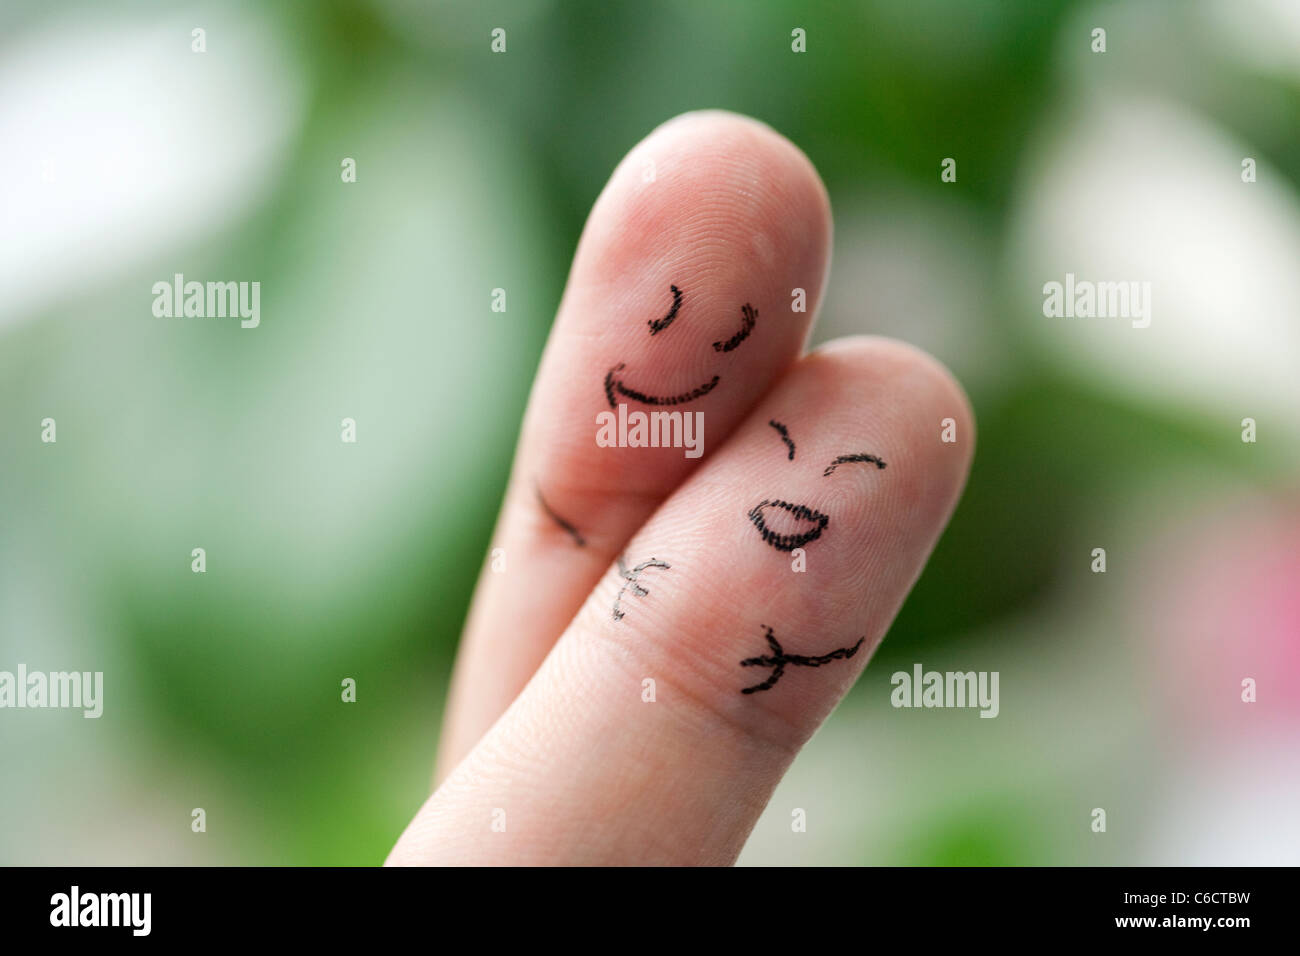 Fingers with smiling faces - Stock Image